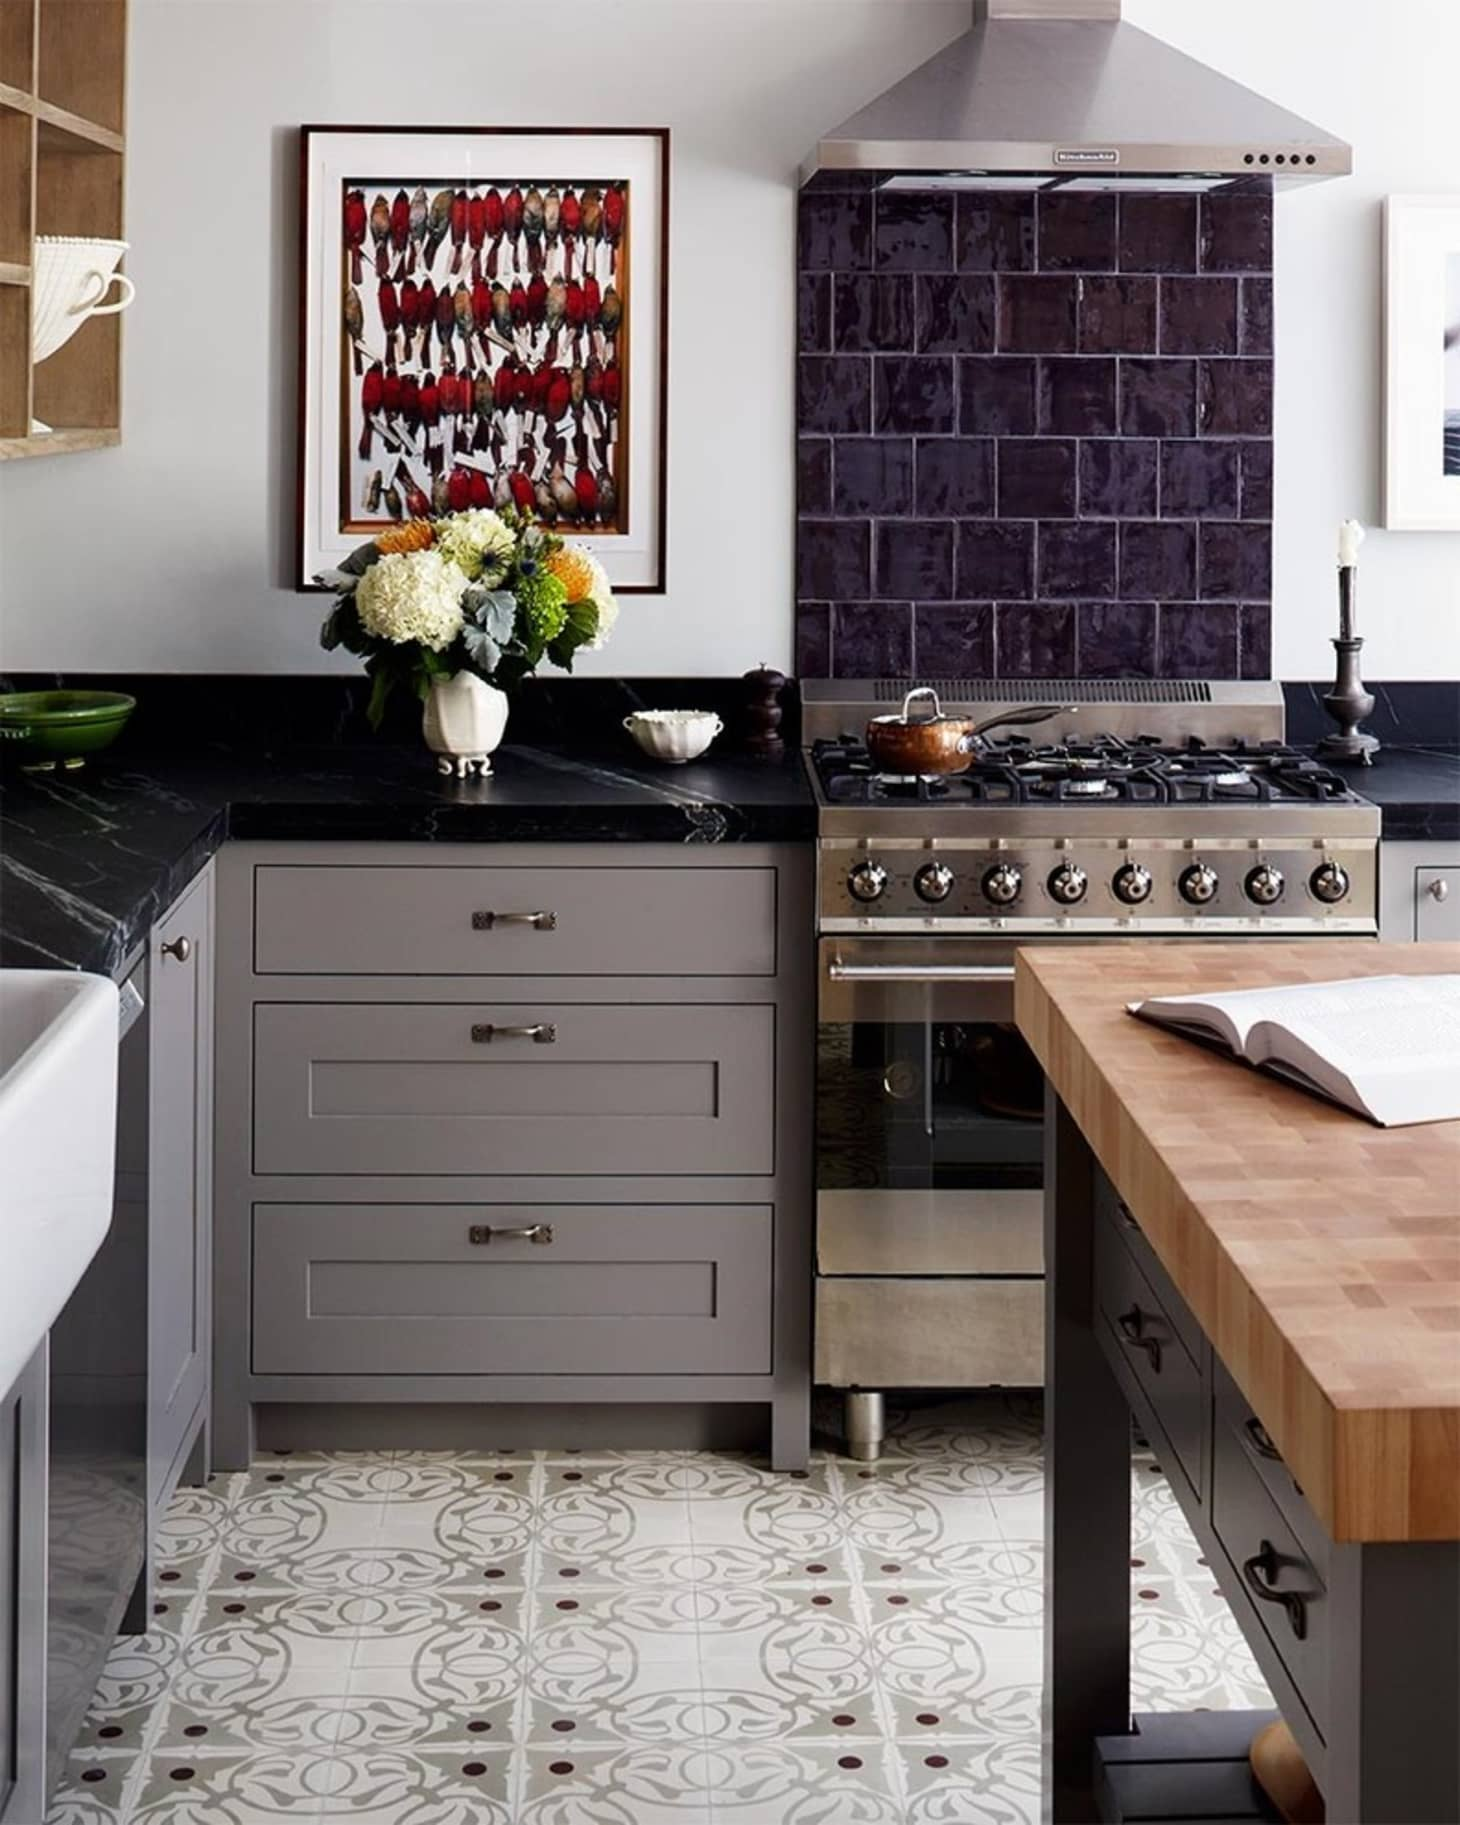 Superbe A Dark Soapstone Countertop Provides A Lovely Contrast To Grey Cabinets In  This Kitchen By Red Design Studio. (Image Credit: Red Design Studio)